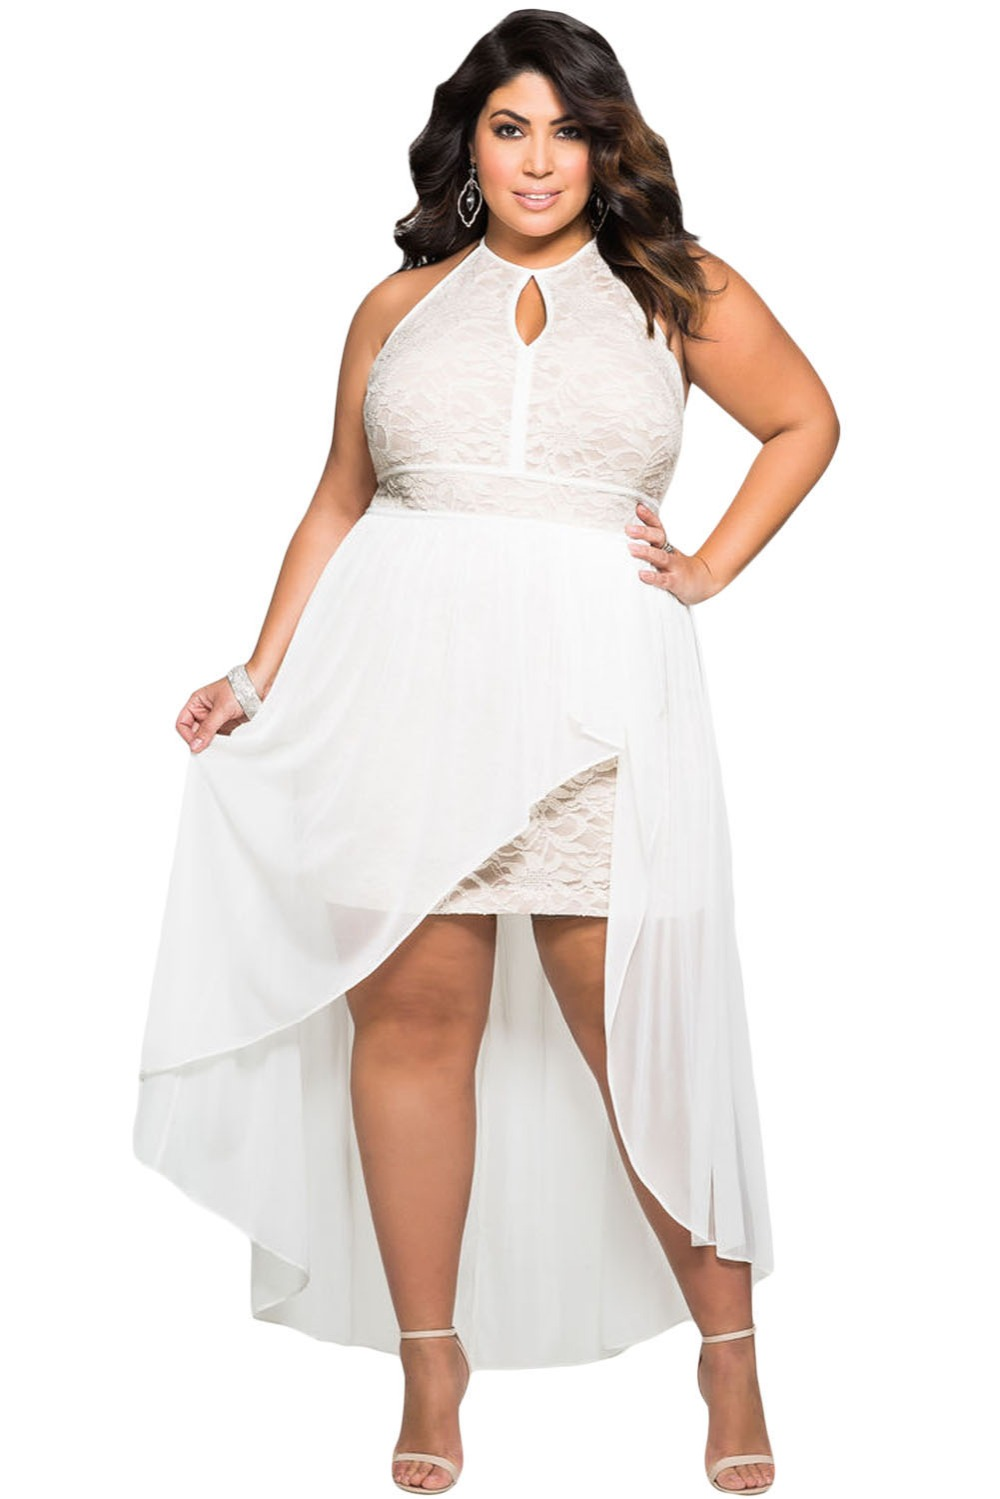 Plus Size New Years Eve Dresses 2018 – Plus Size Women ...